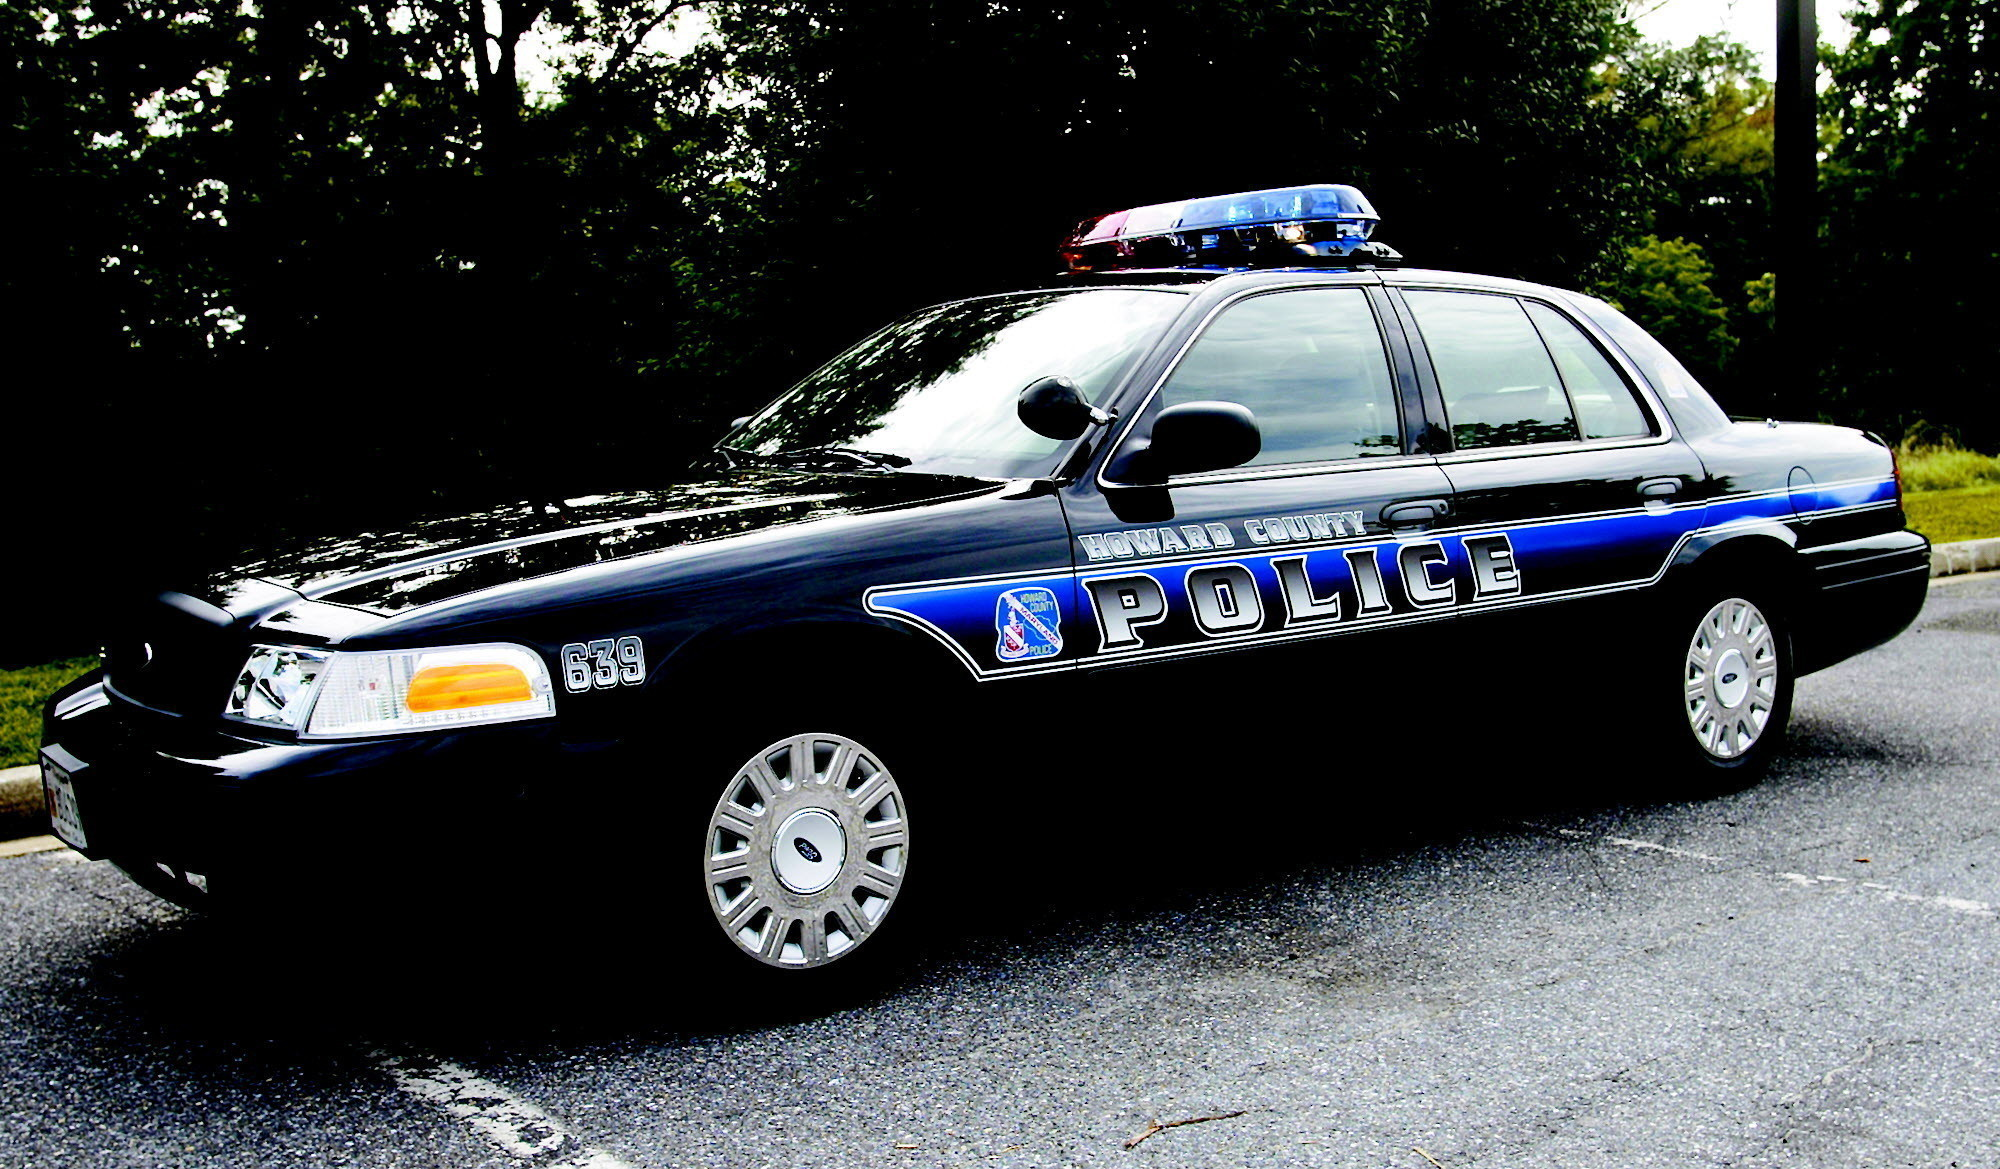 Tractor Trailer Rings : Howard police strike against tractor trailer theft ring